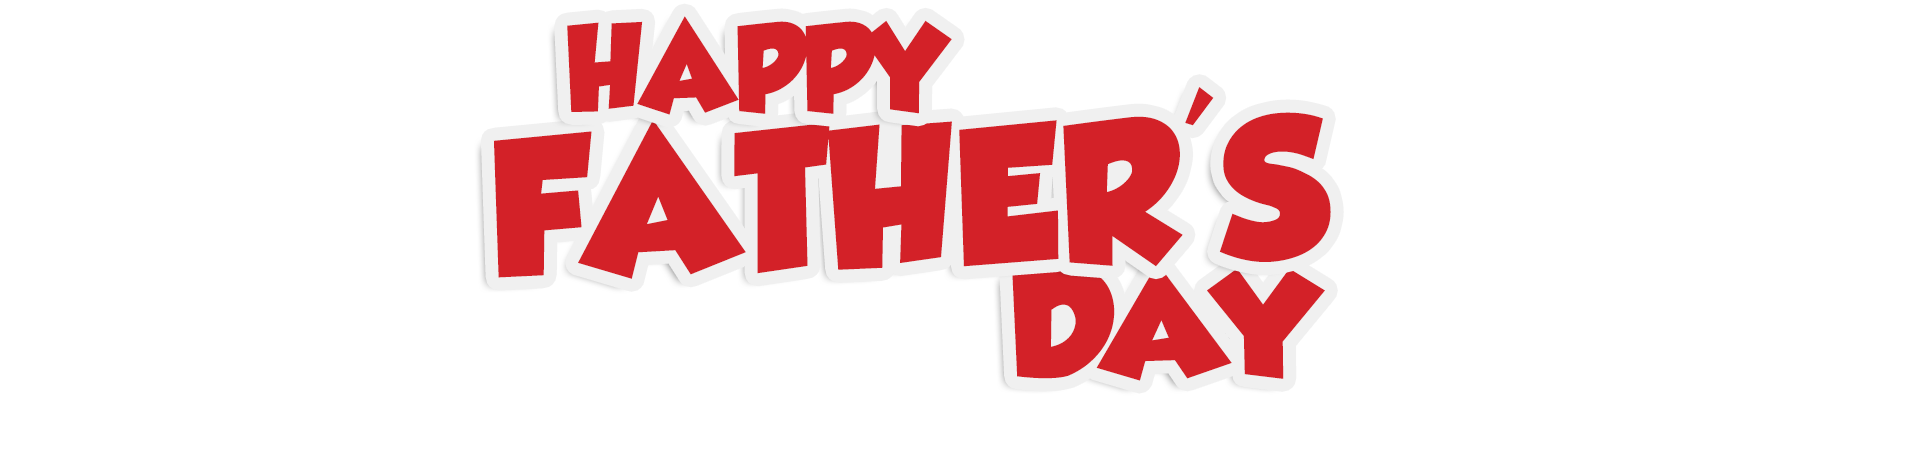 Happy Fathers Day Clipart Free Download with Banners Pics Photos.